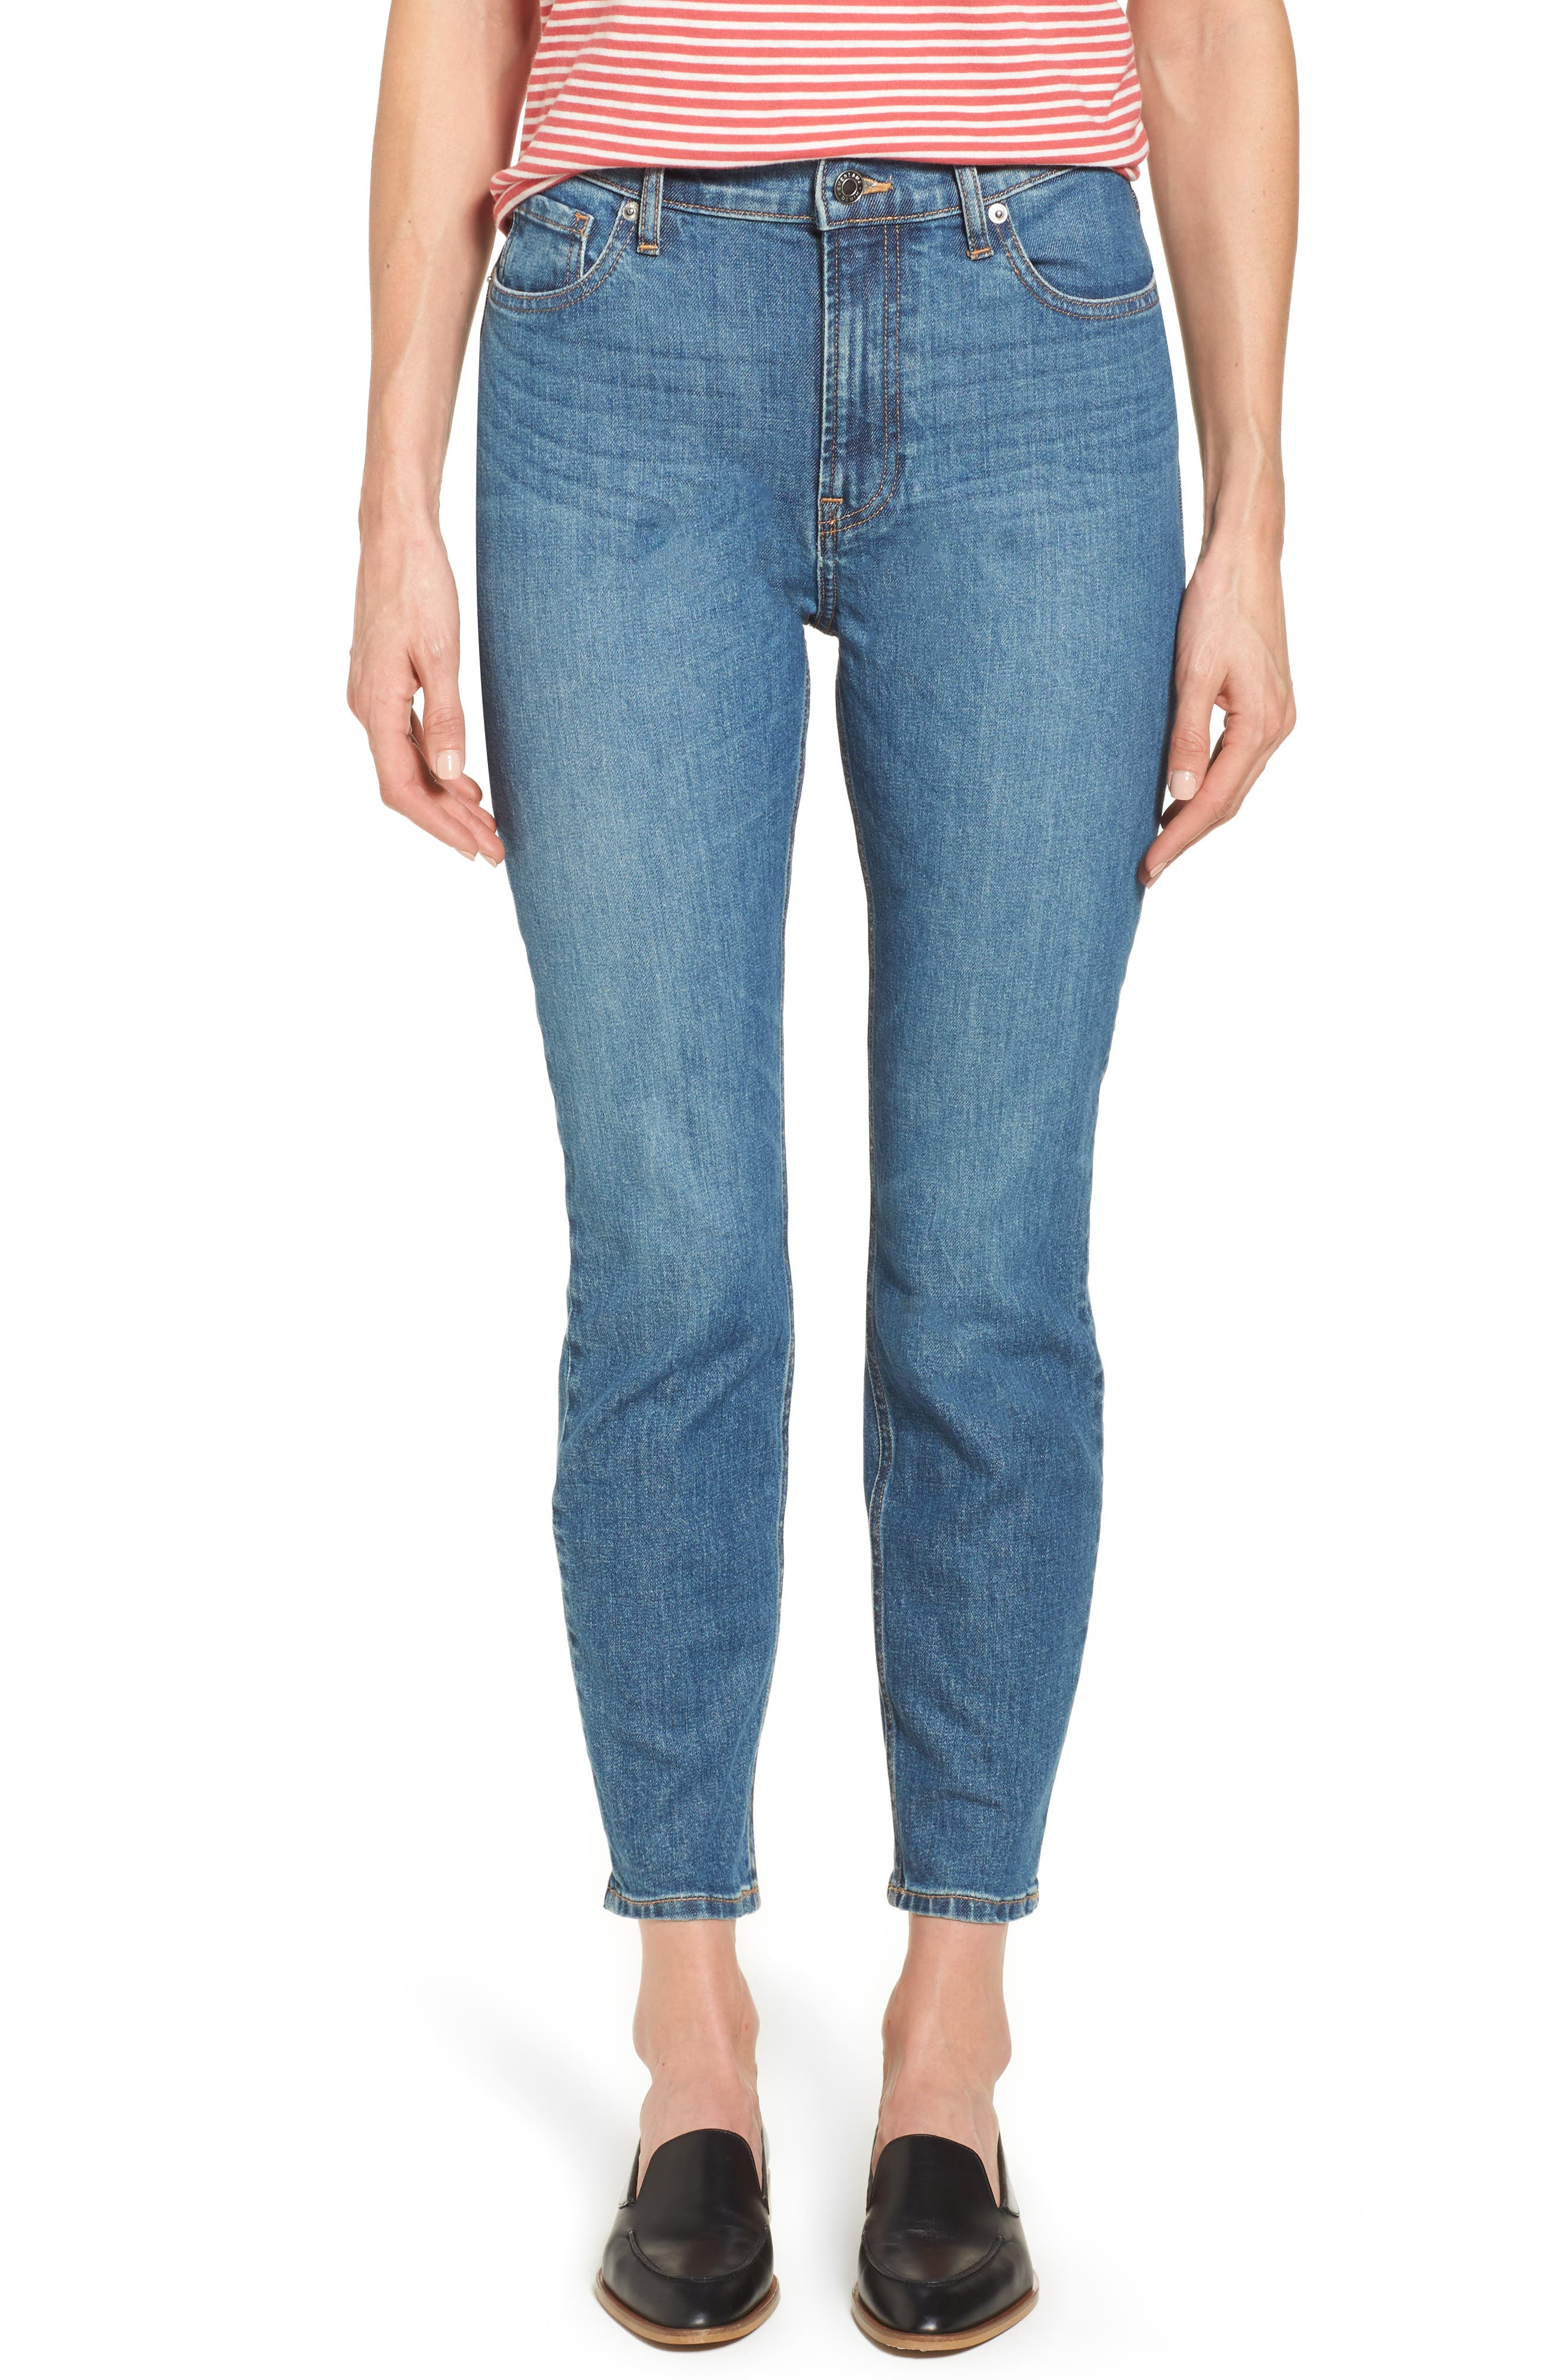 Alternate Image 1 Selected - Everlane The High Rise Skinny Ankle Jeans